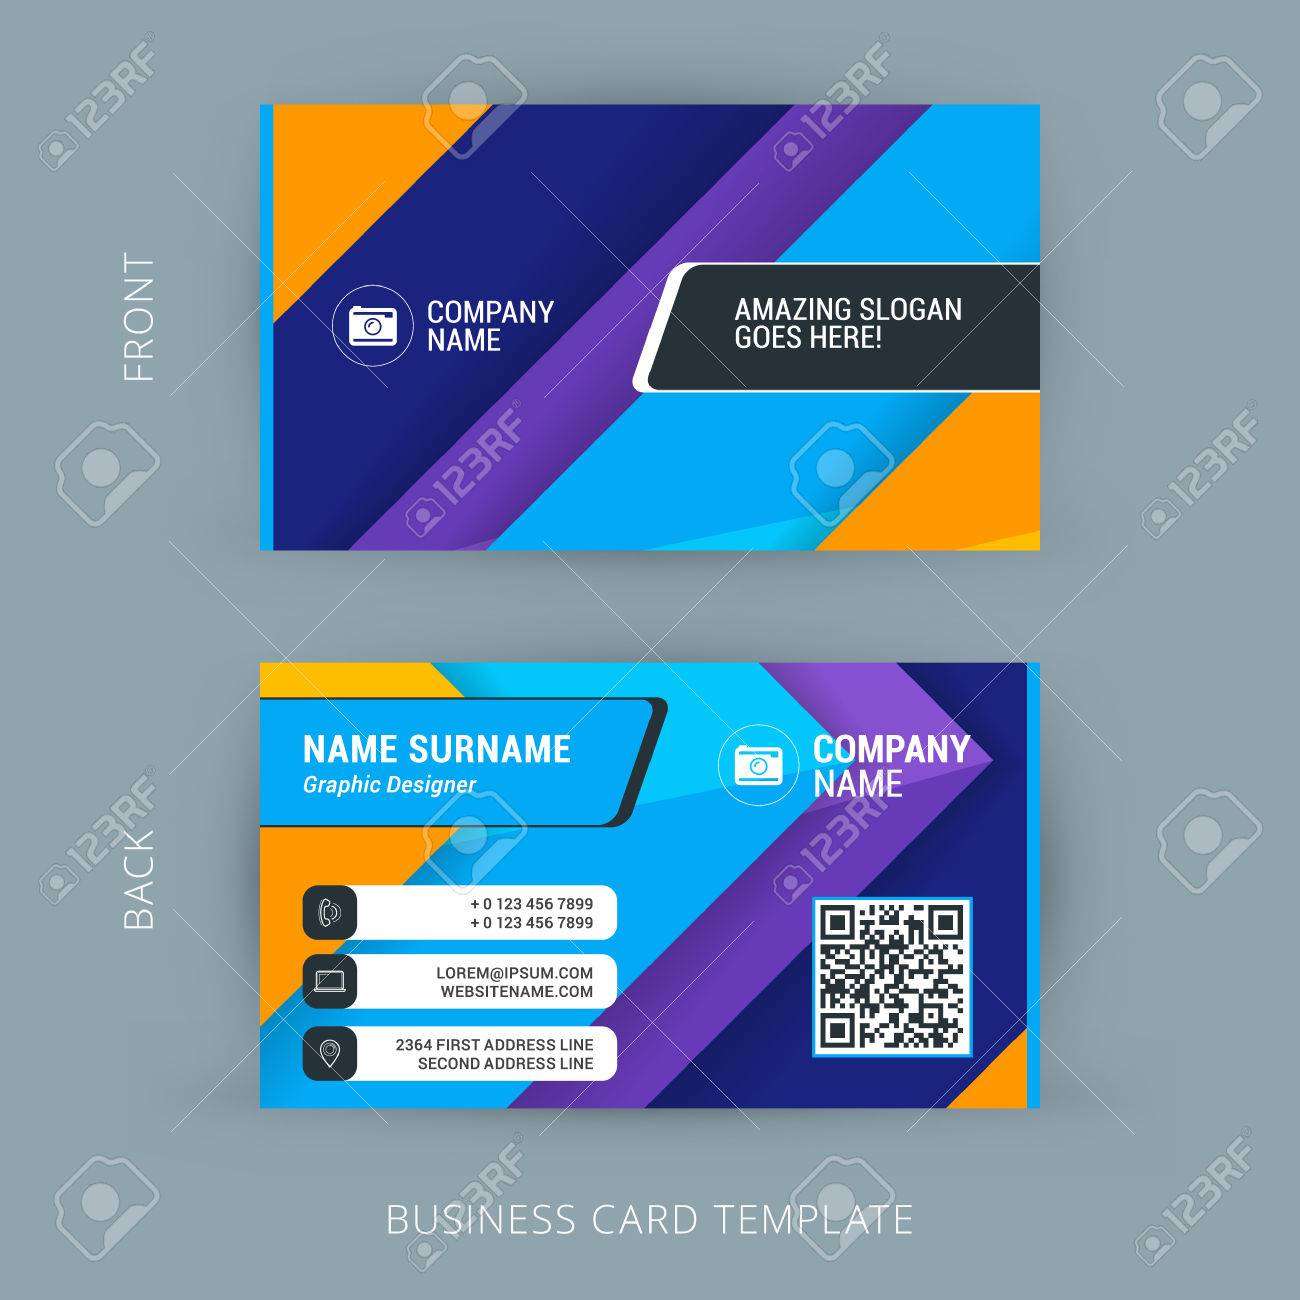 Fantastic geographics business card template ideas business card charming geographics business card template ideas business card solutioingenieria Images